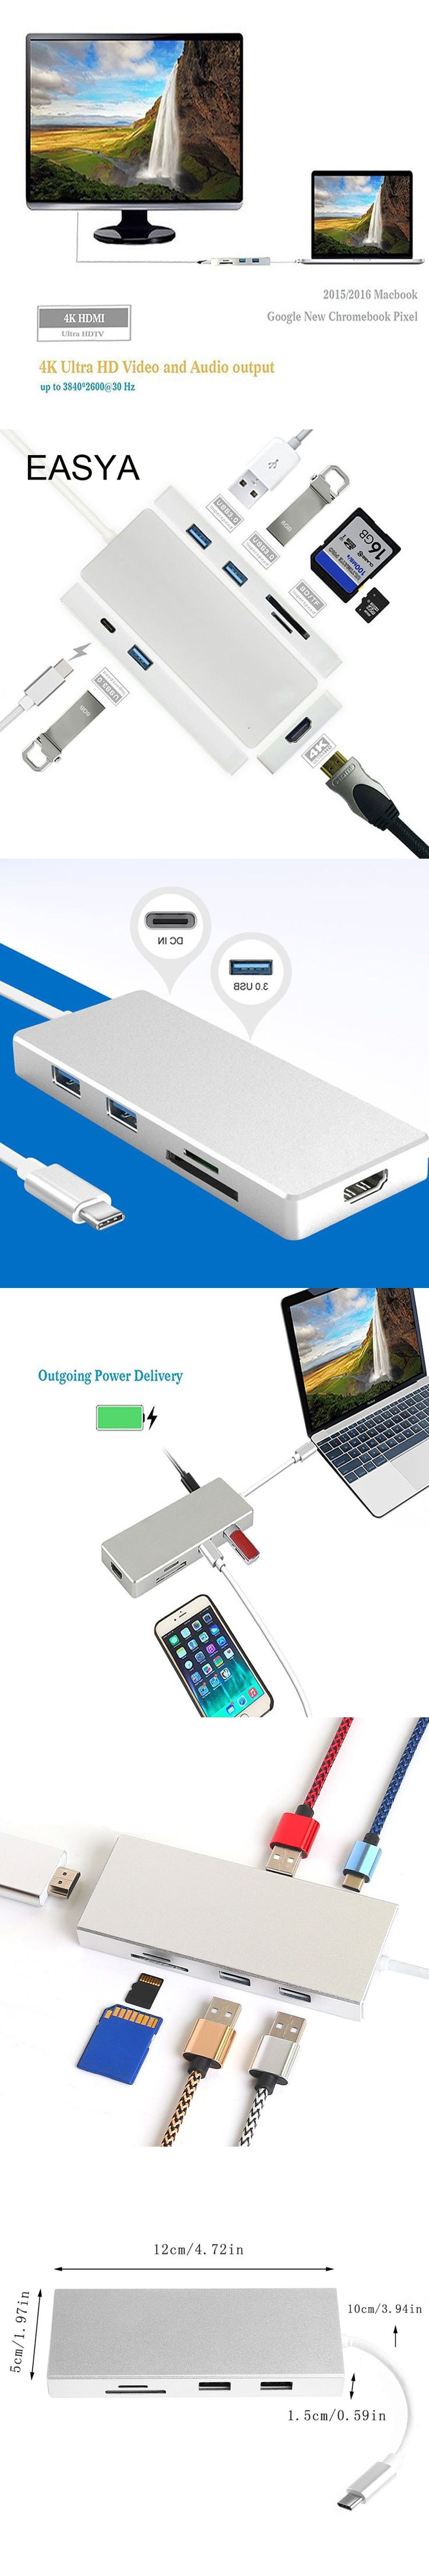 EASYA USB Type-C Hub To HDMI Adapter with USB C Hub 3.0 Power Delivery 4K Video HD SD/TF Card Reader for MacBook Pro